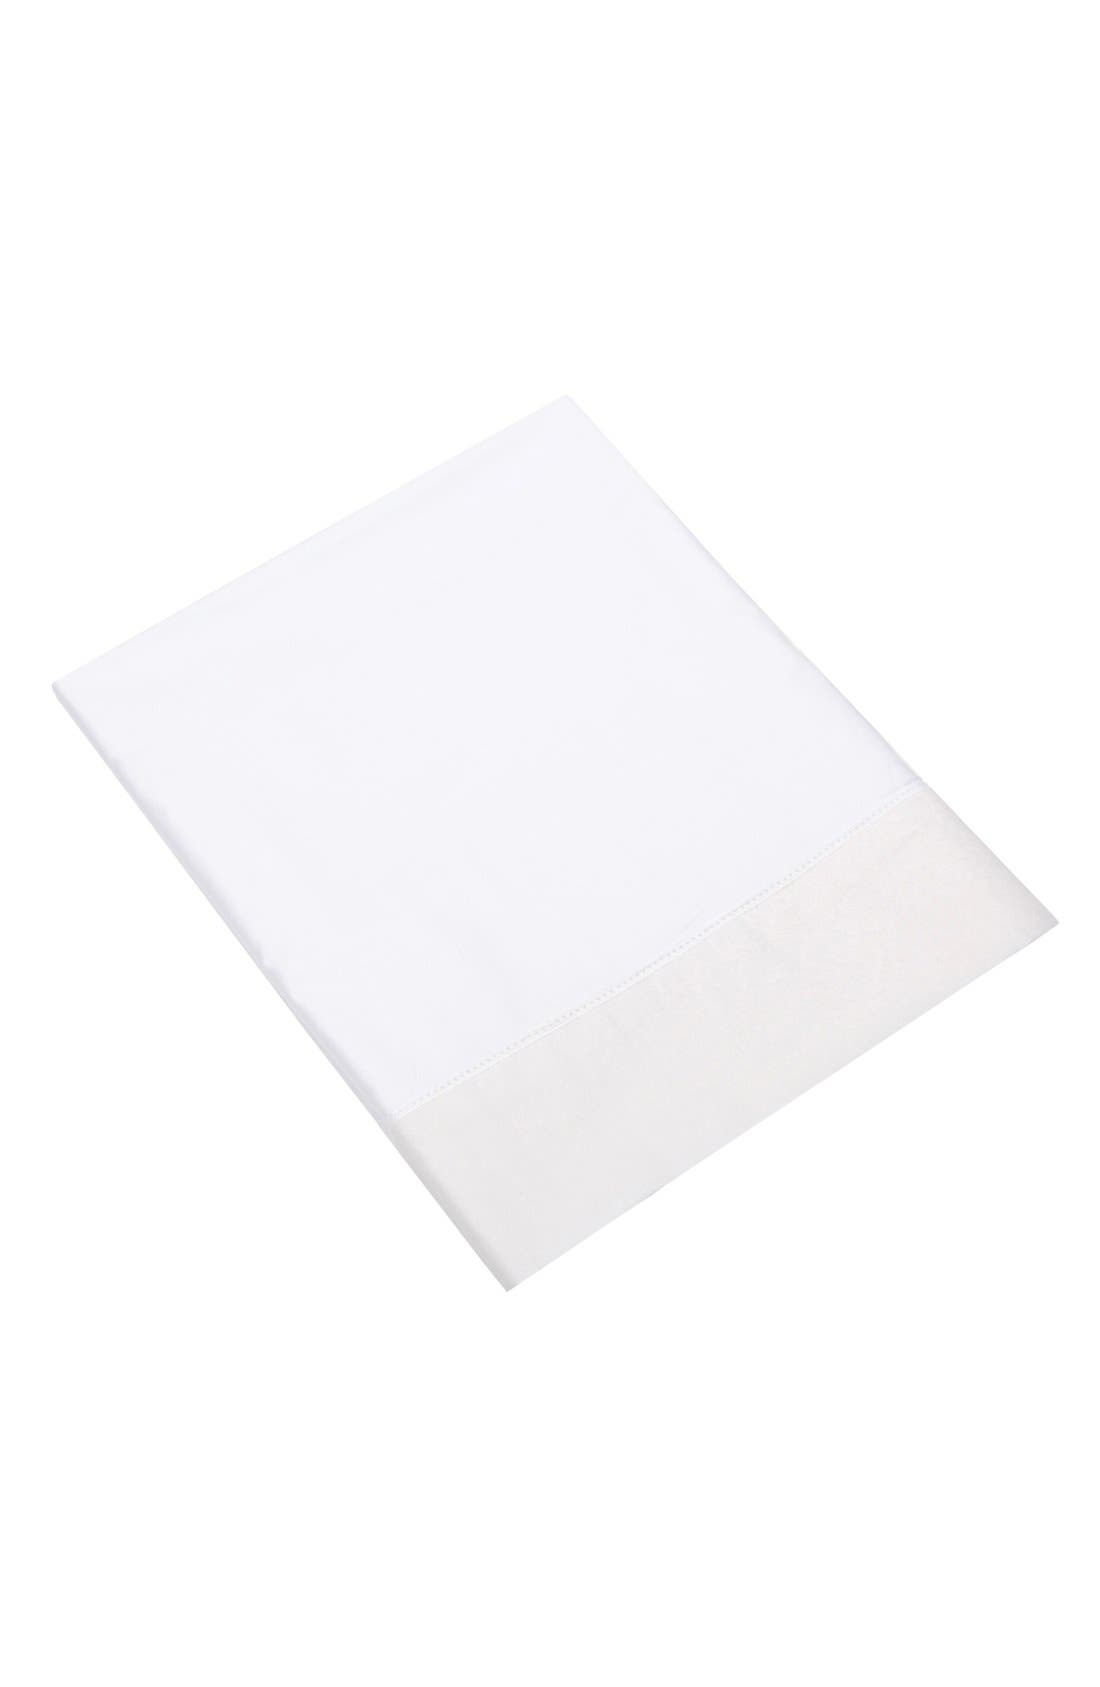 Alternate Image 1 Selected - Blissliving Home 'Mayfair White' Queen Flat Sheet